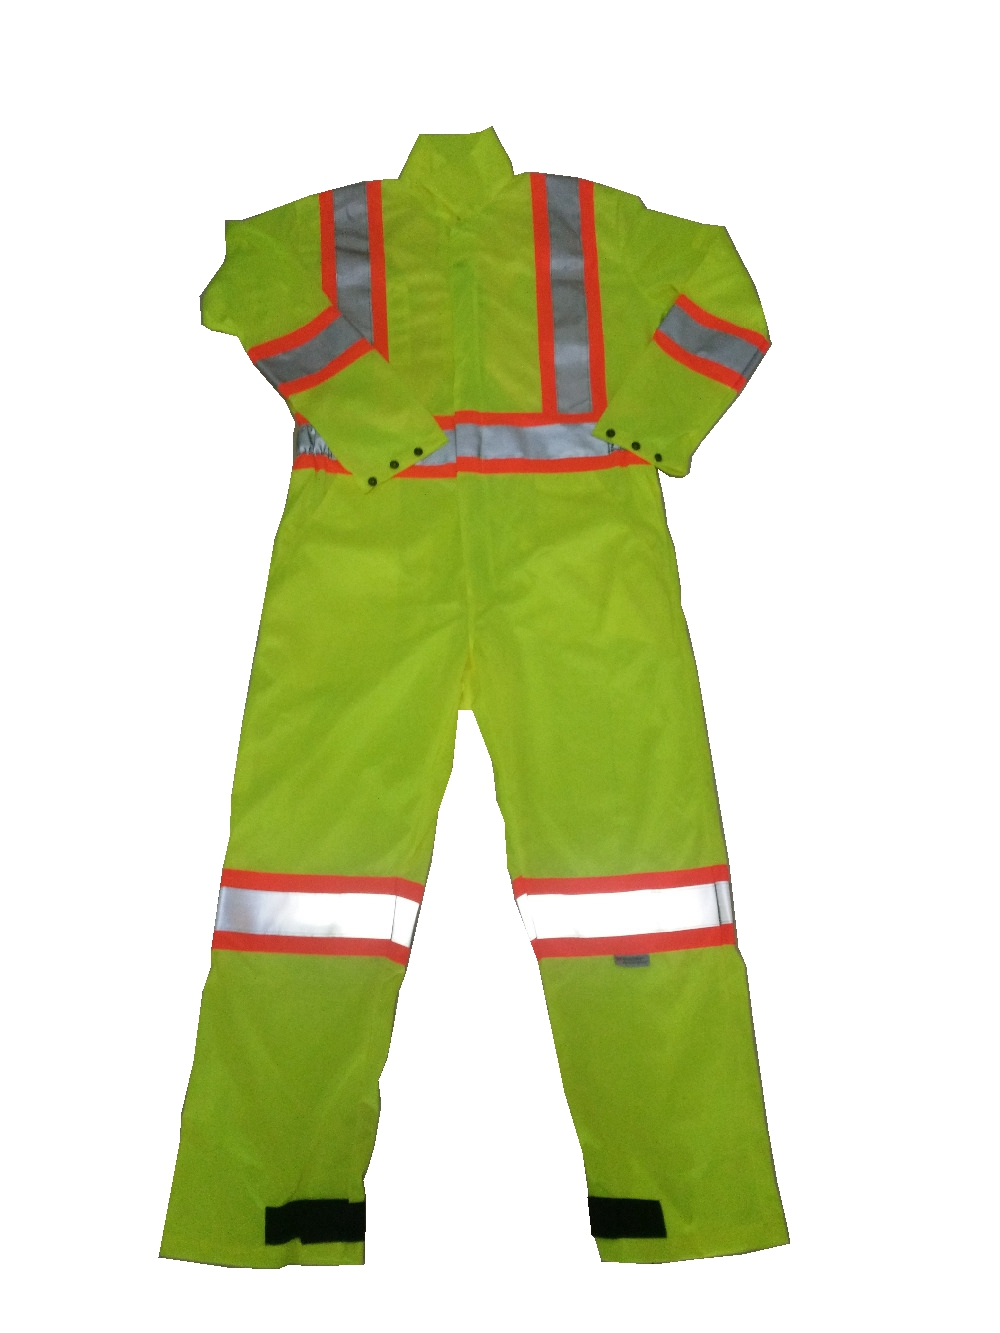 Fluorescence Yellow High Visibility Safety workwear Hi Viz Work Coat coverall workwear coveralls suits ash жаккардовые босоножки boom